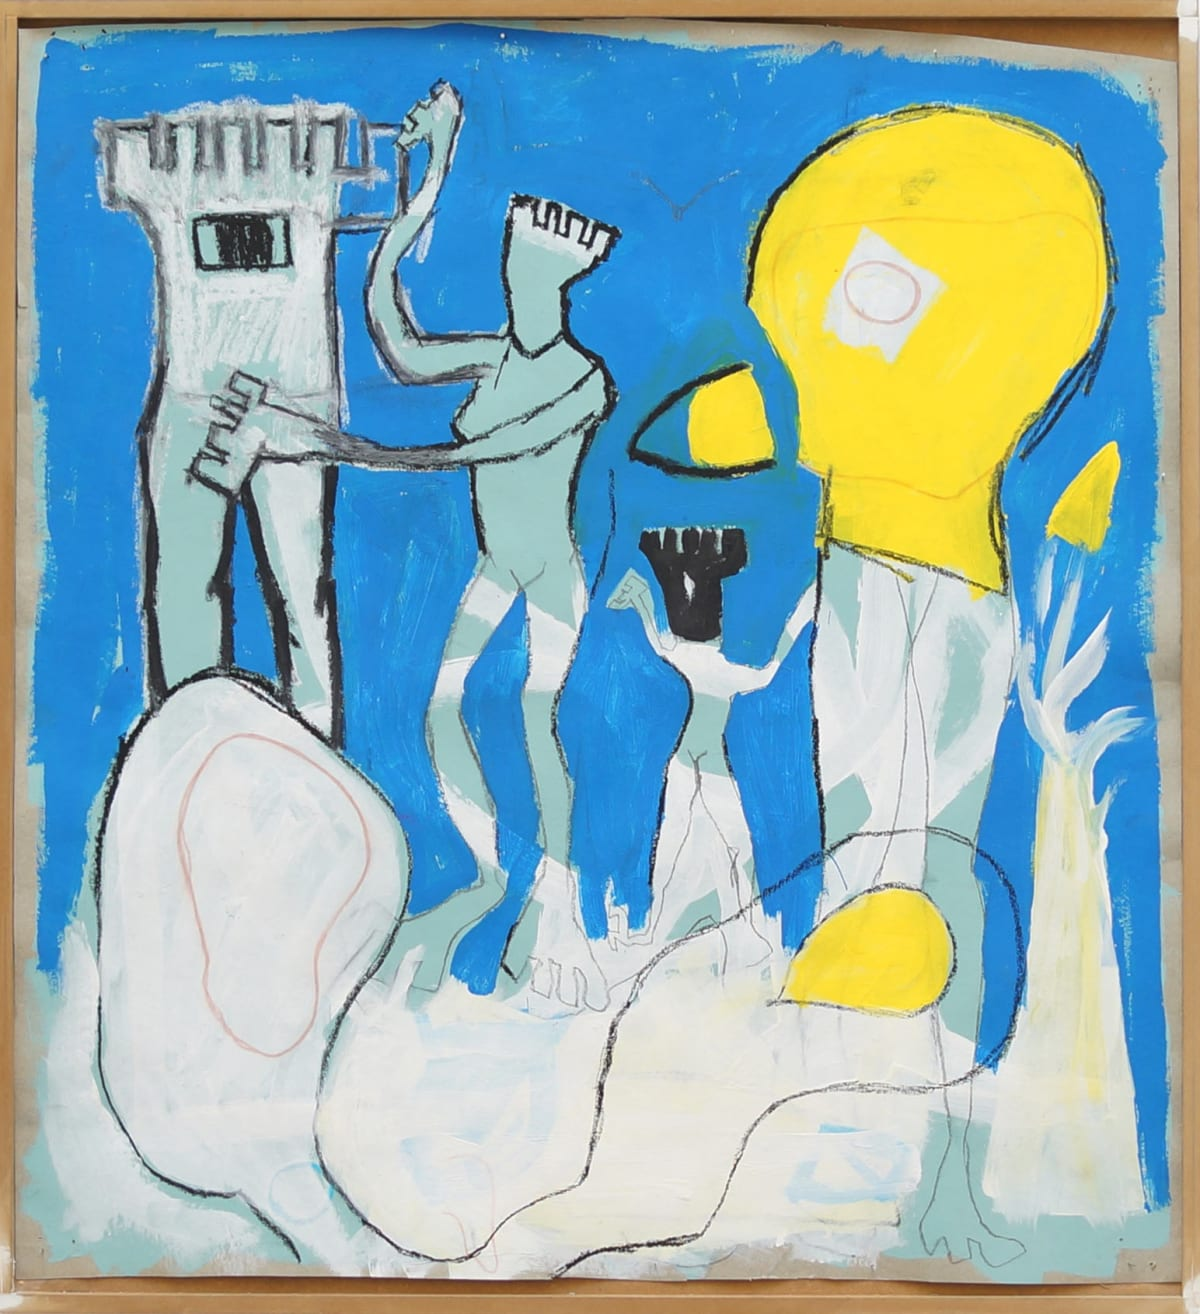 ernst koslitsch shows an artwork with two figures a duck a tower in blue white and yellow